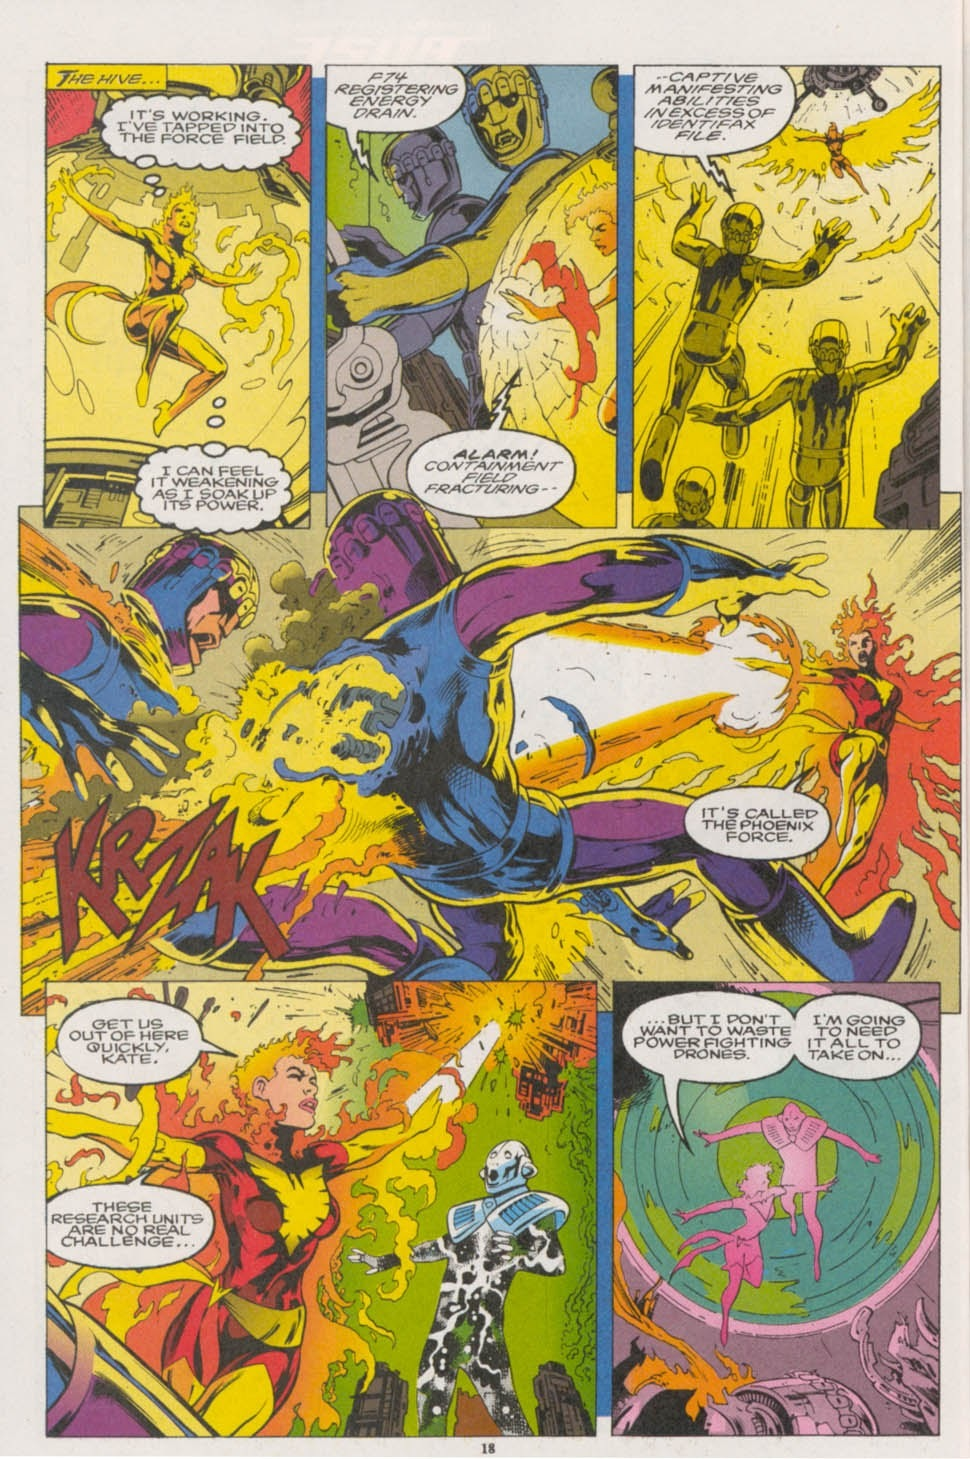 Drains powers from the Days of Future Past Sentinels containment field in order to escape - Excalibur v1 #67